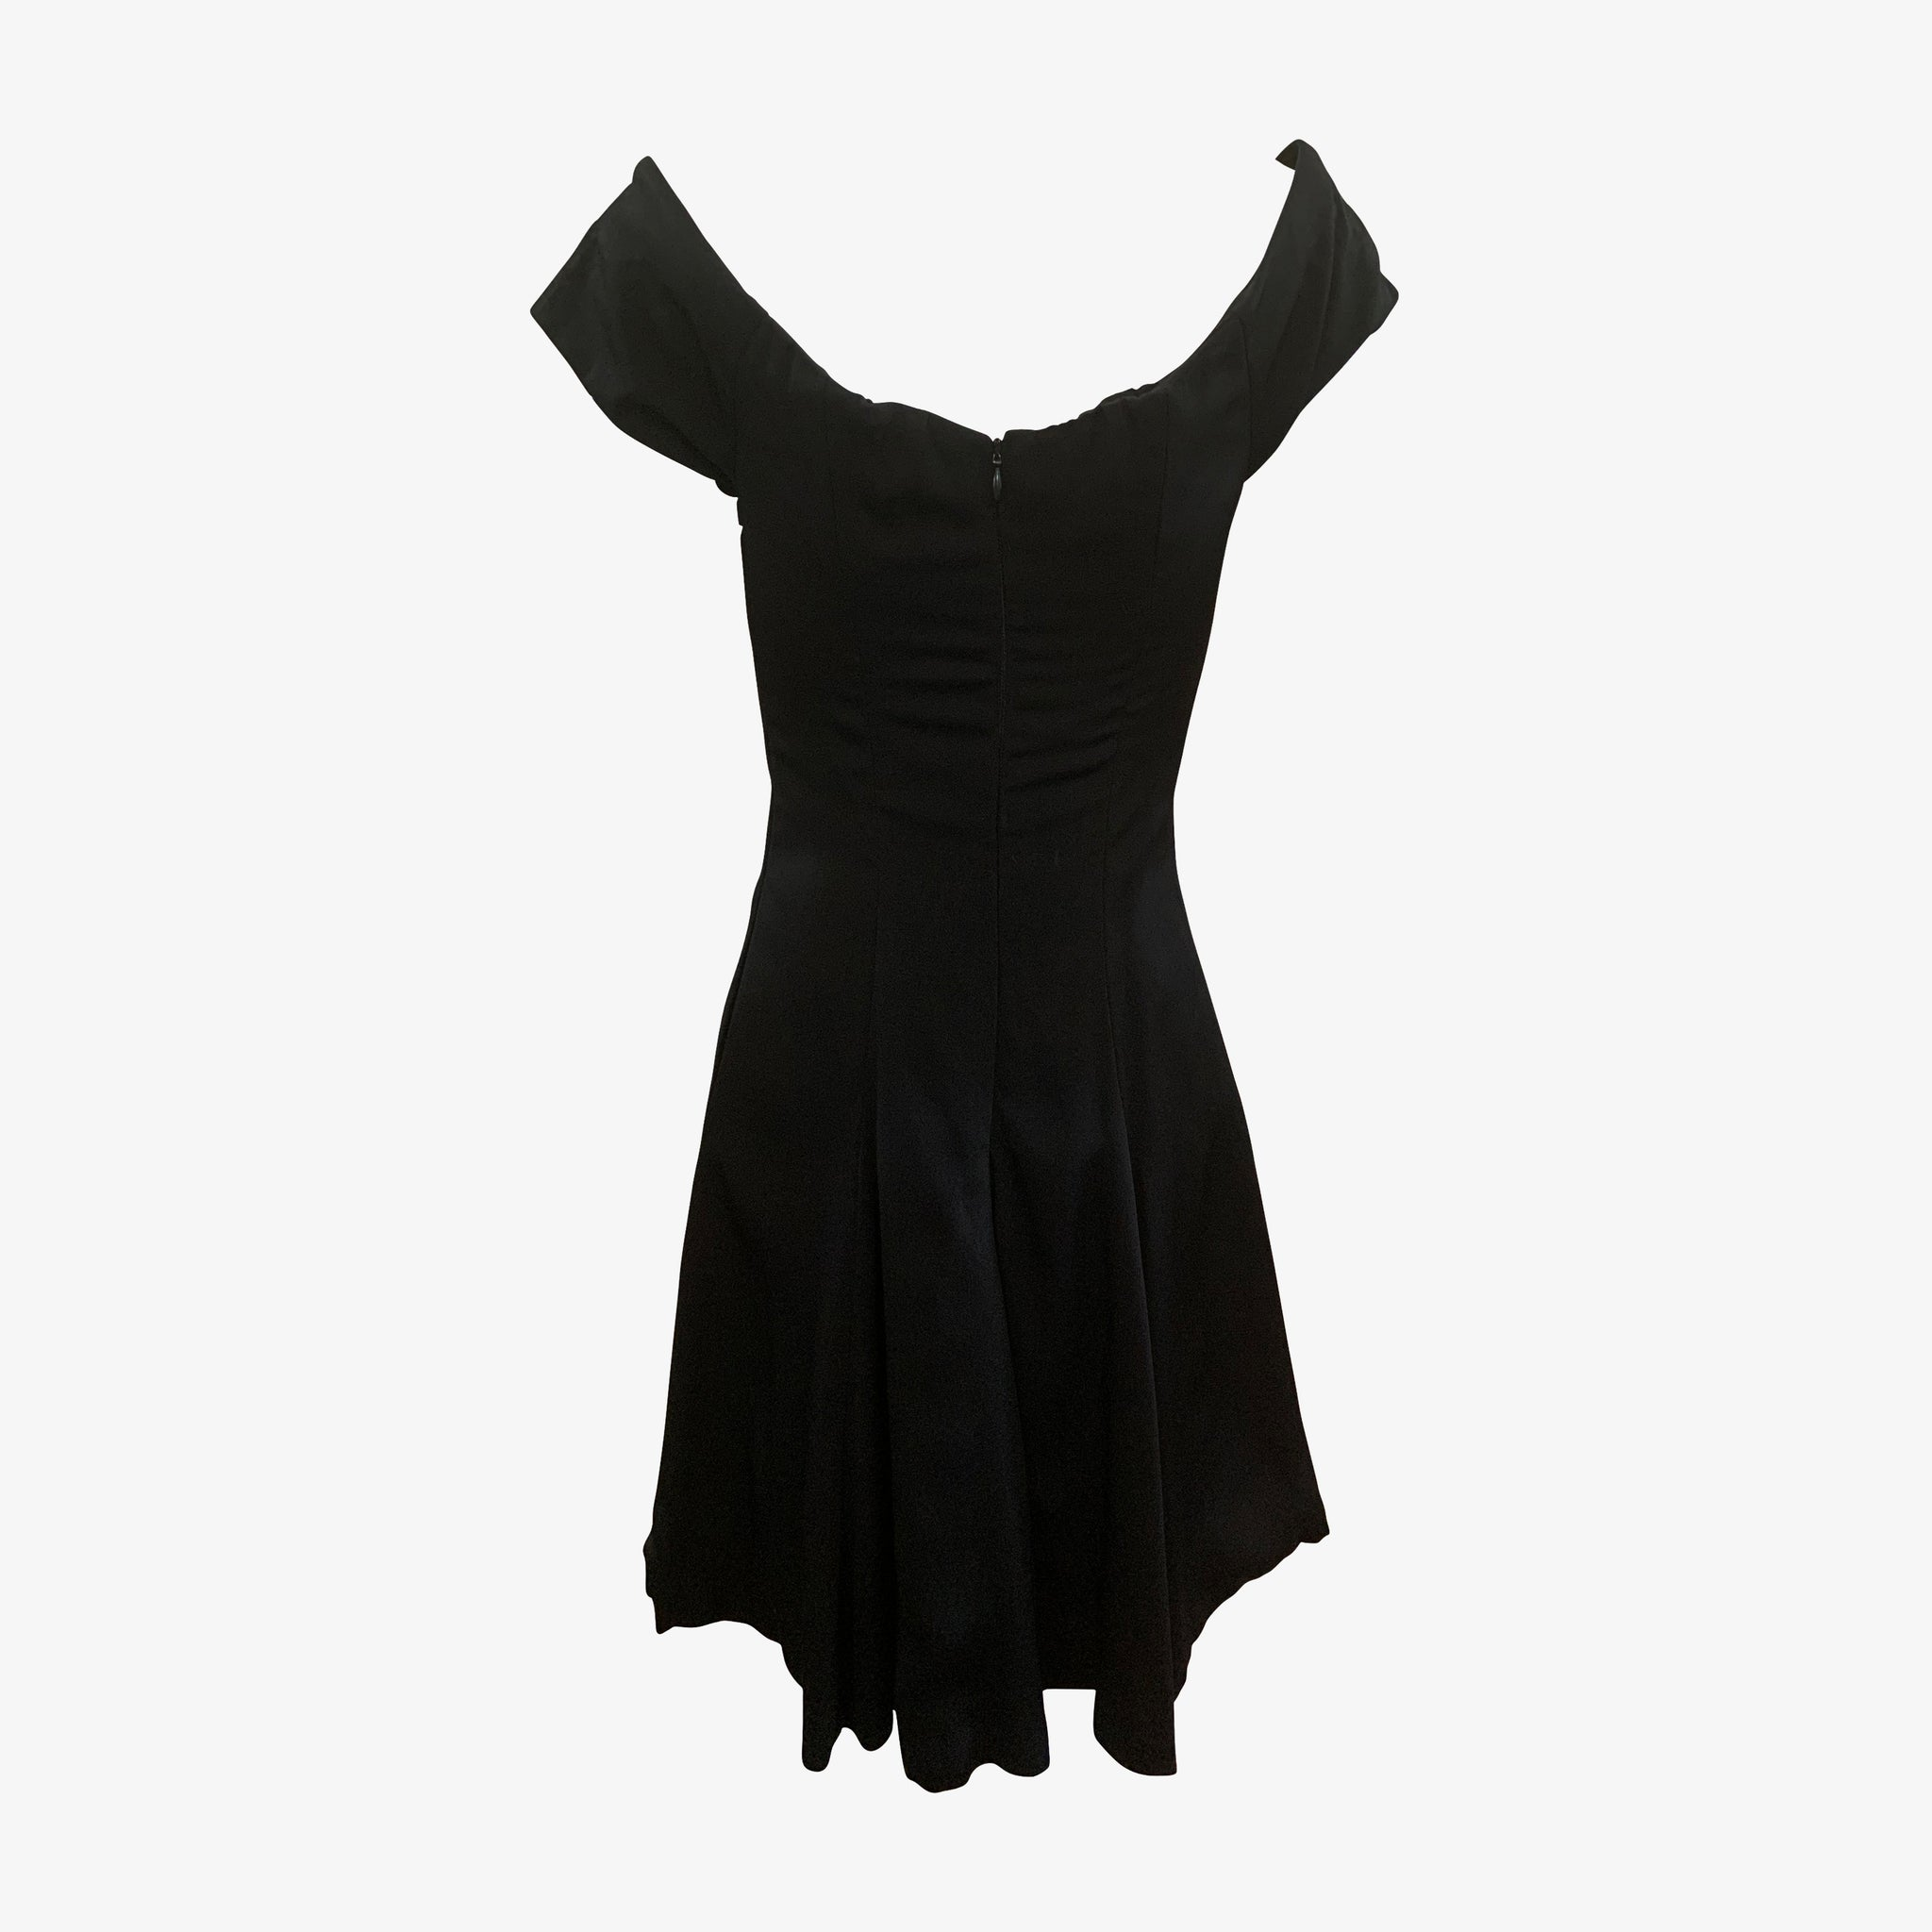 Nicole Miller 80s Black Crepe Mini Dress BACK 2 of 3